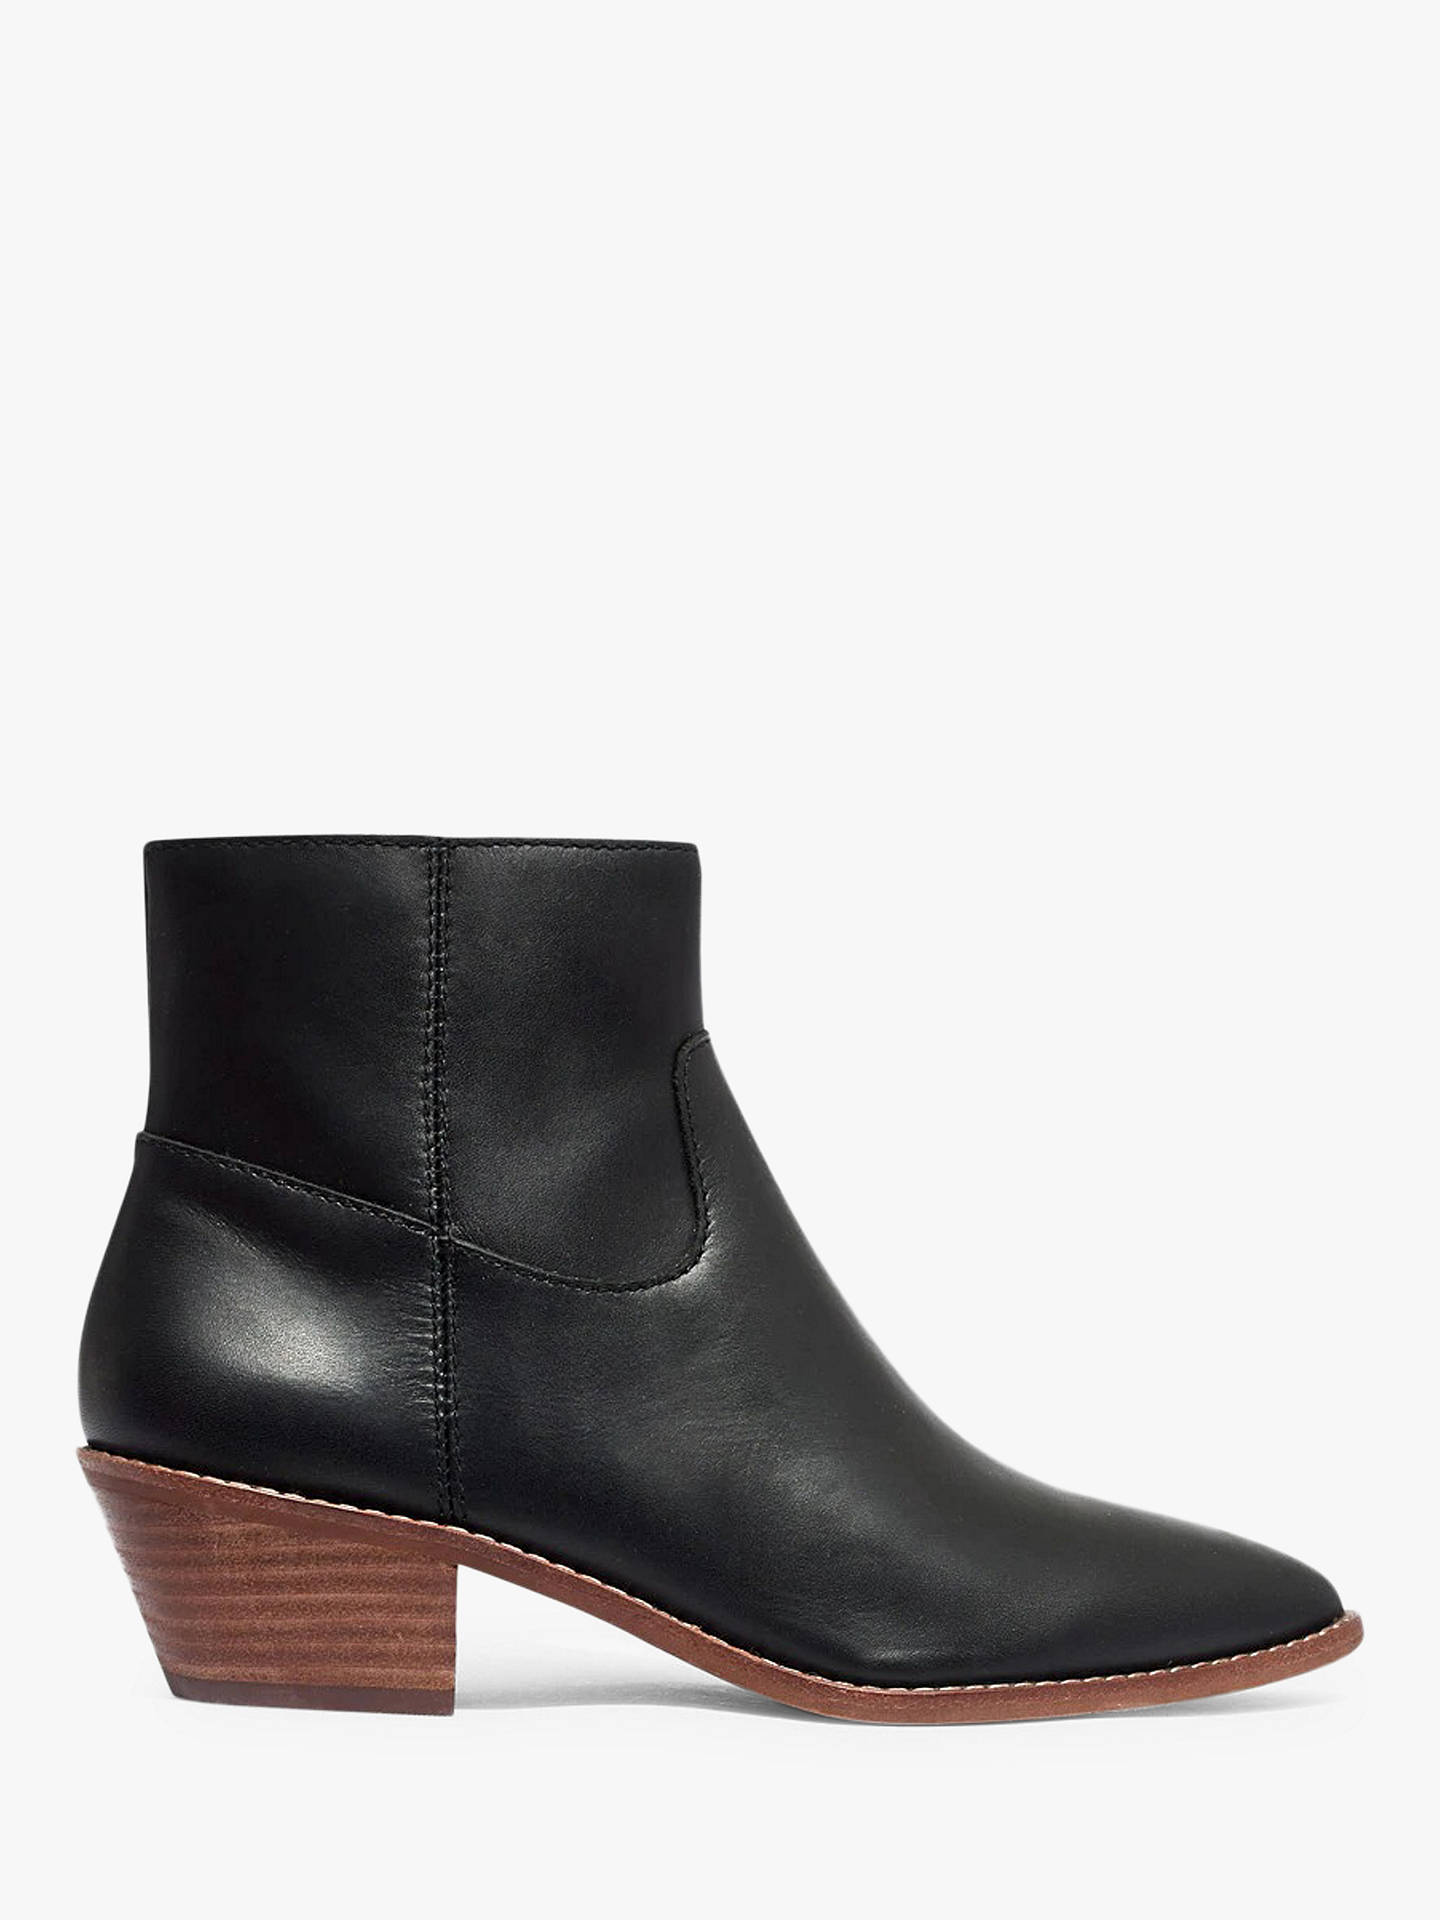 63433c883 Buy Madewell Charley Leather Pointed Ankle Boots, Black, 5.5 Online at  johnlewis.com ...